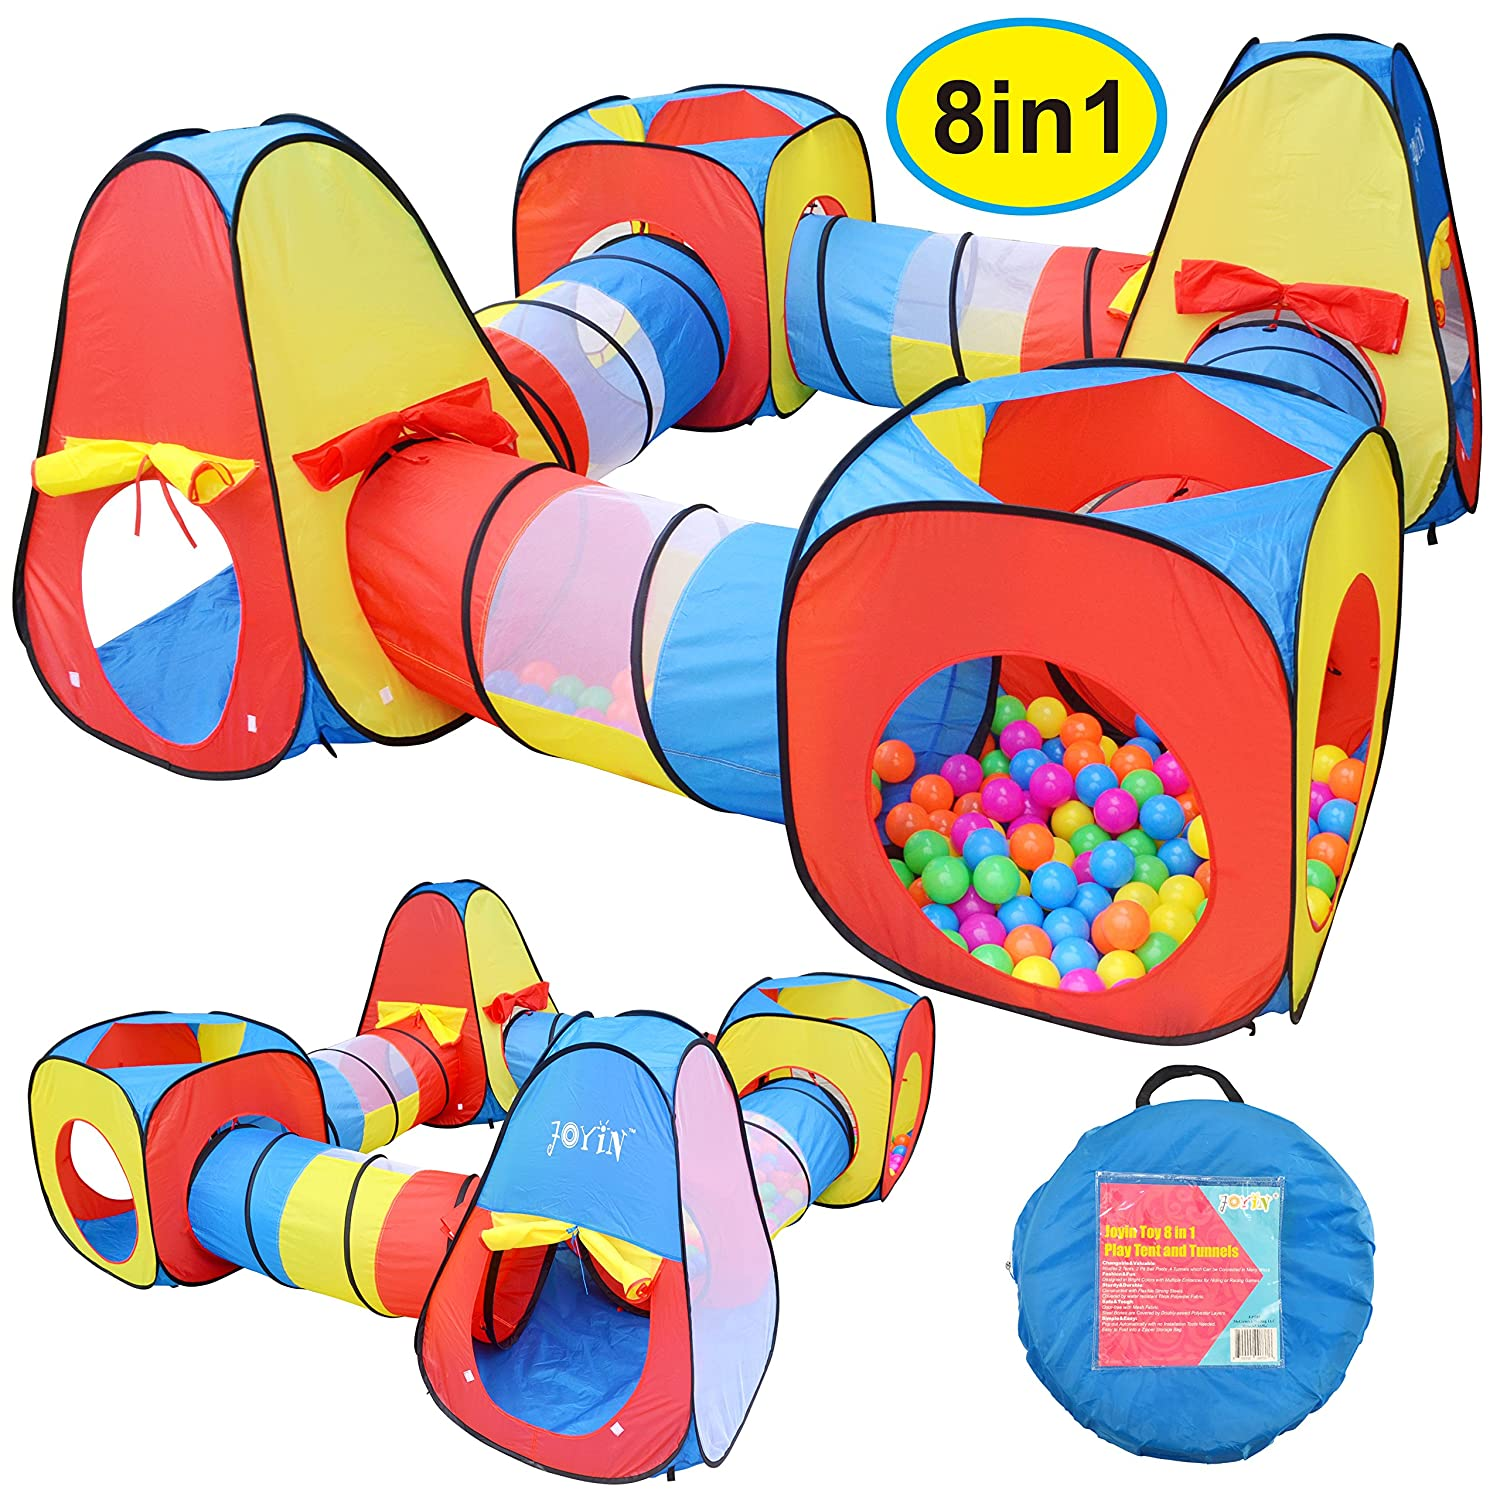 Joyin Toy 8 in 1 Pop-up Play Tent Tunnel Including 4 Kids Play Tunnels, 2 Cubic Tents and 2 Triangle Tents Perfect for Ball Pit Playing Joyin Inc